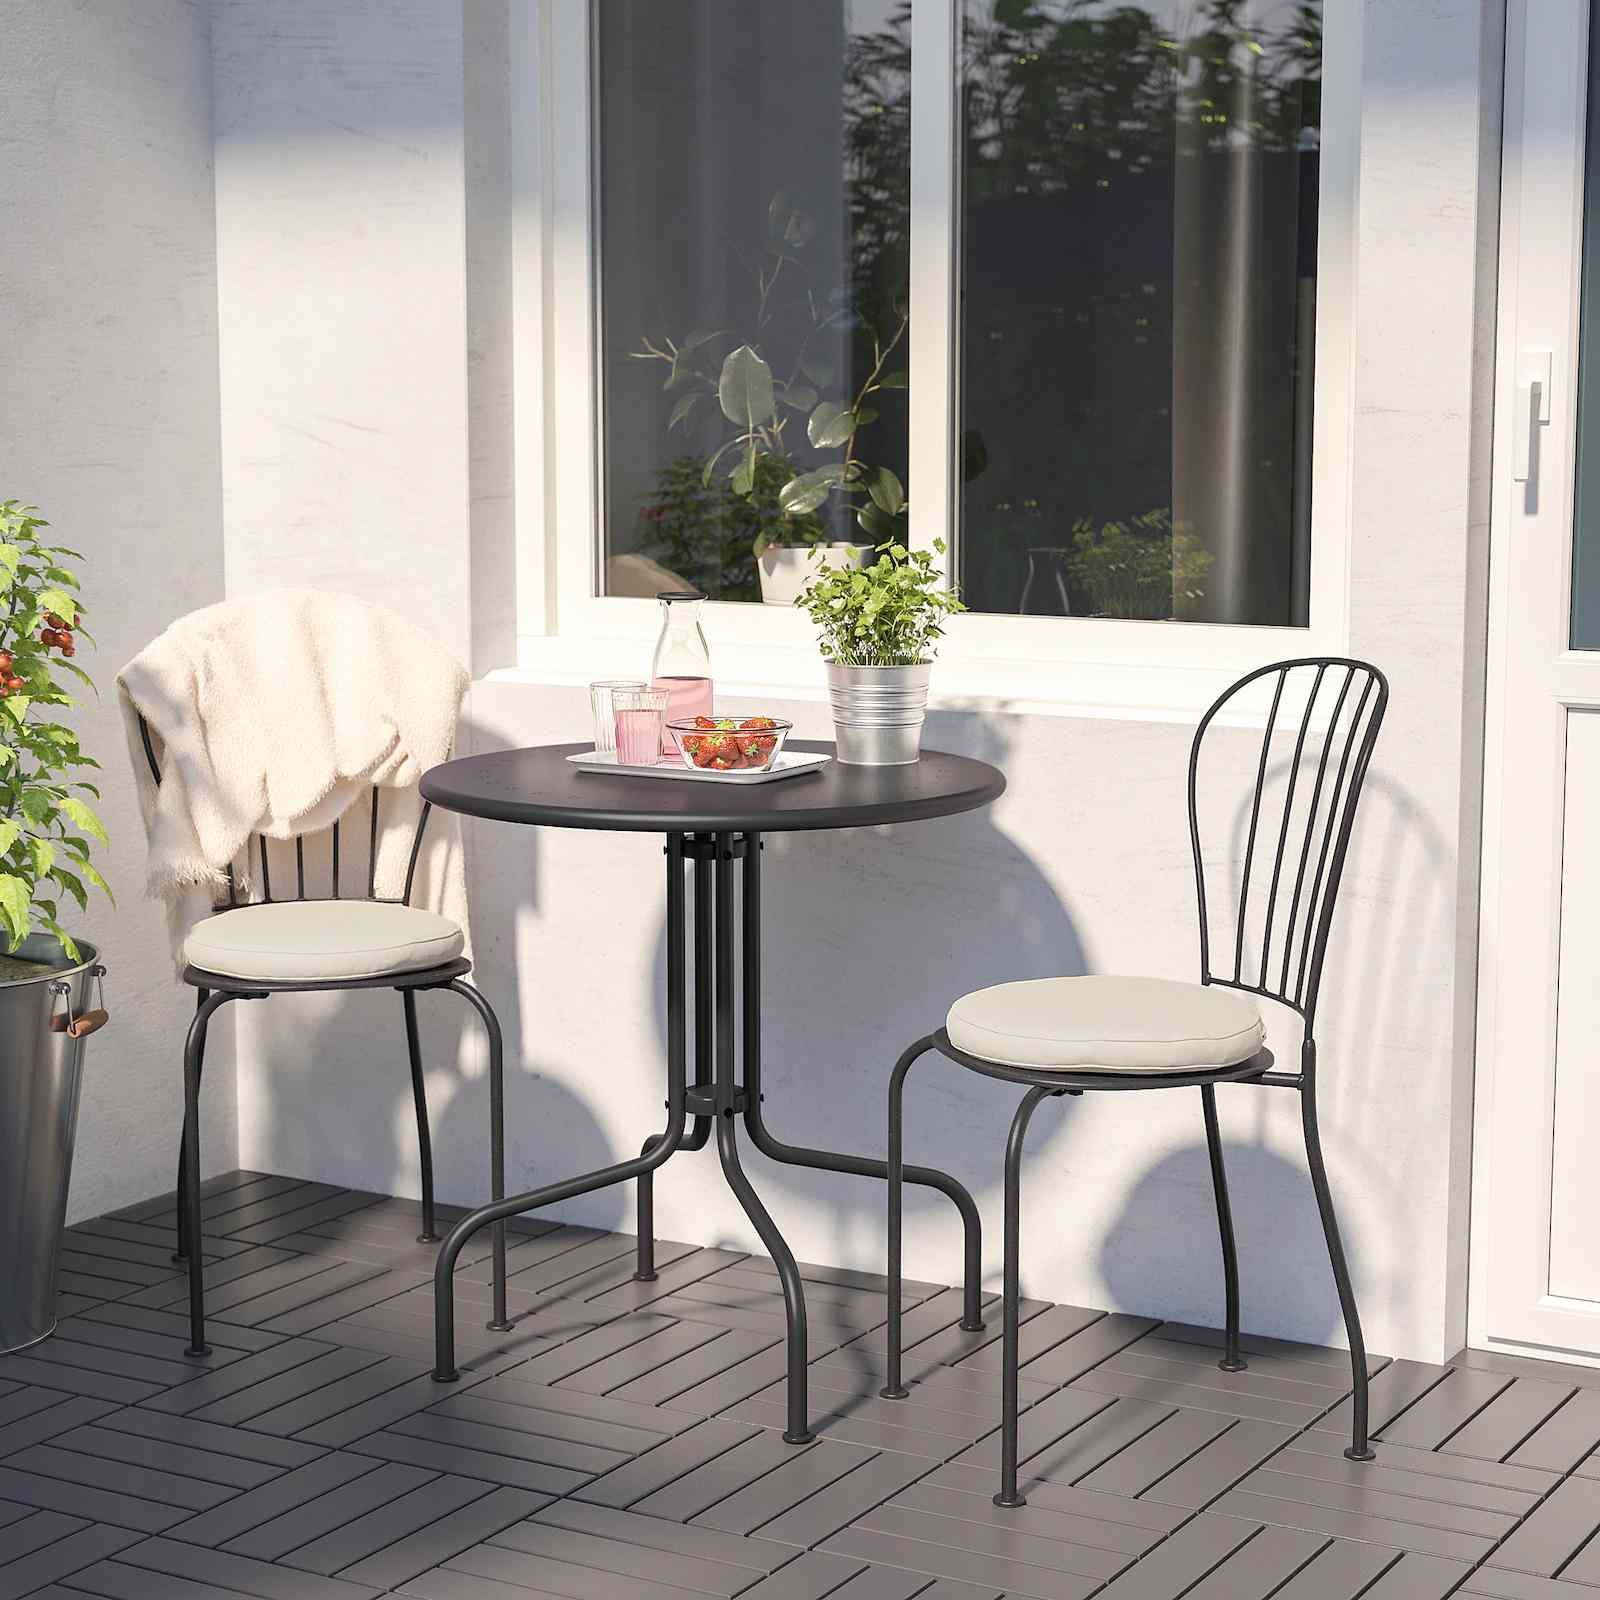 IKEA LÄCKÖ patio table and two chairs